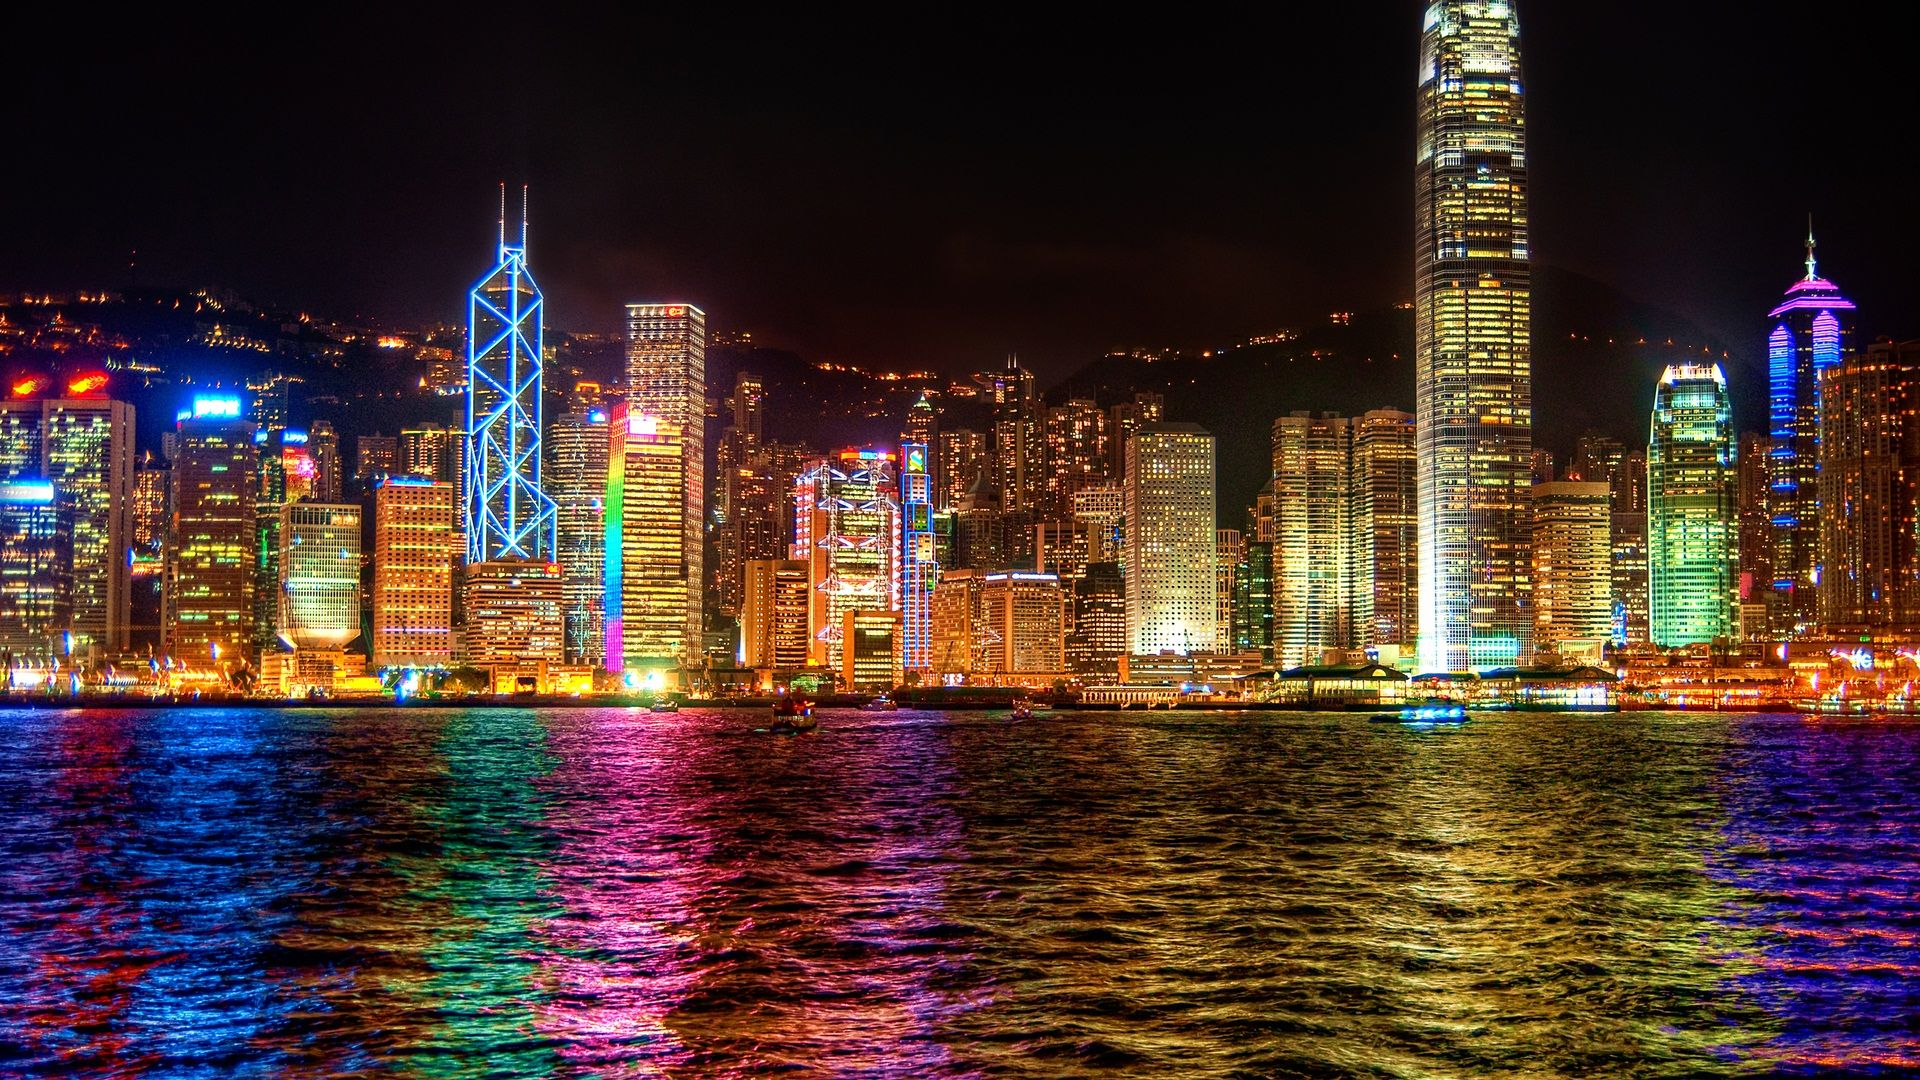 Colorful City Wallpaper Hd 1080p | Effervescent Colorful Imagery in 2019 | Pinterest | Night ...